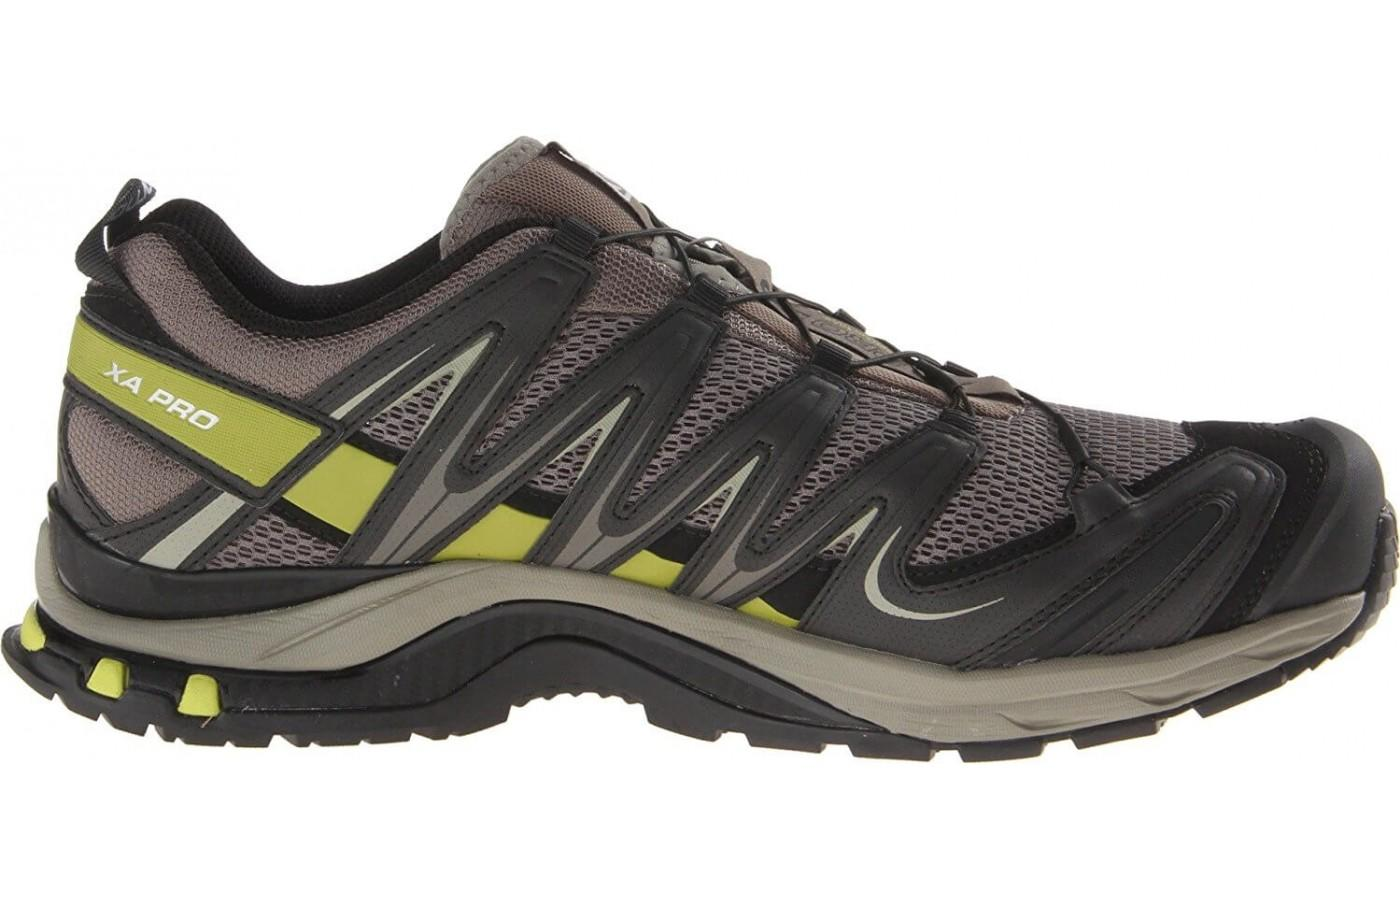 The Salomon Xa Pro 3D M+ has an outdoor adventure look